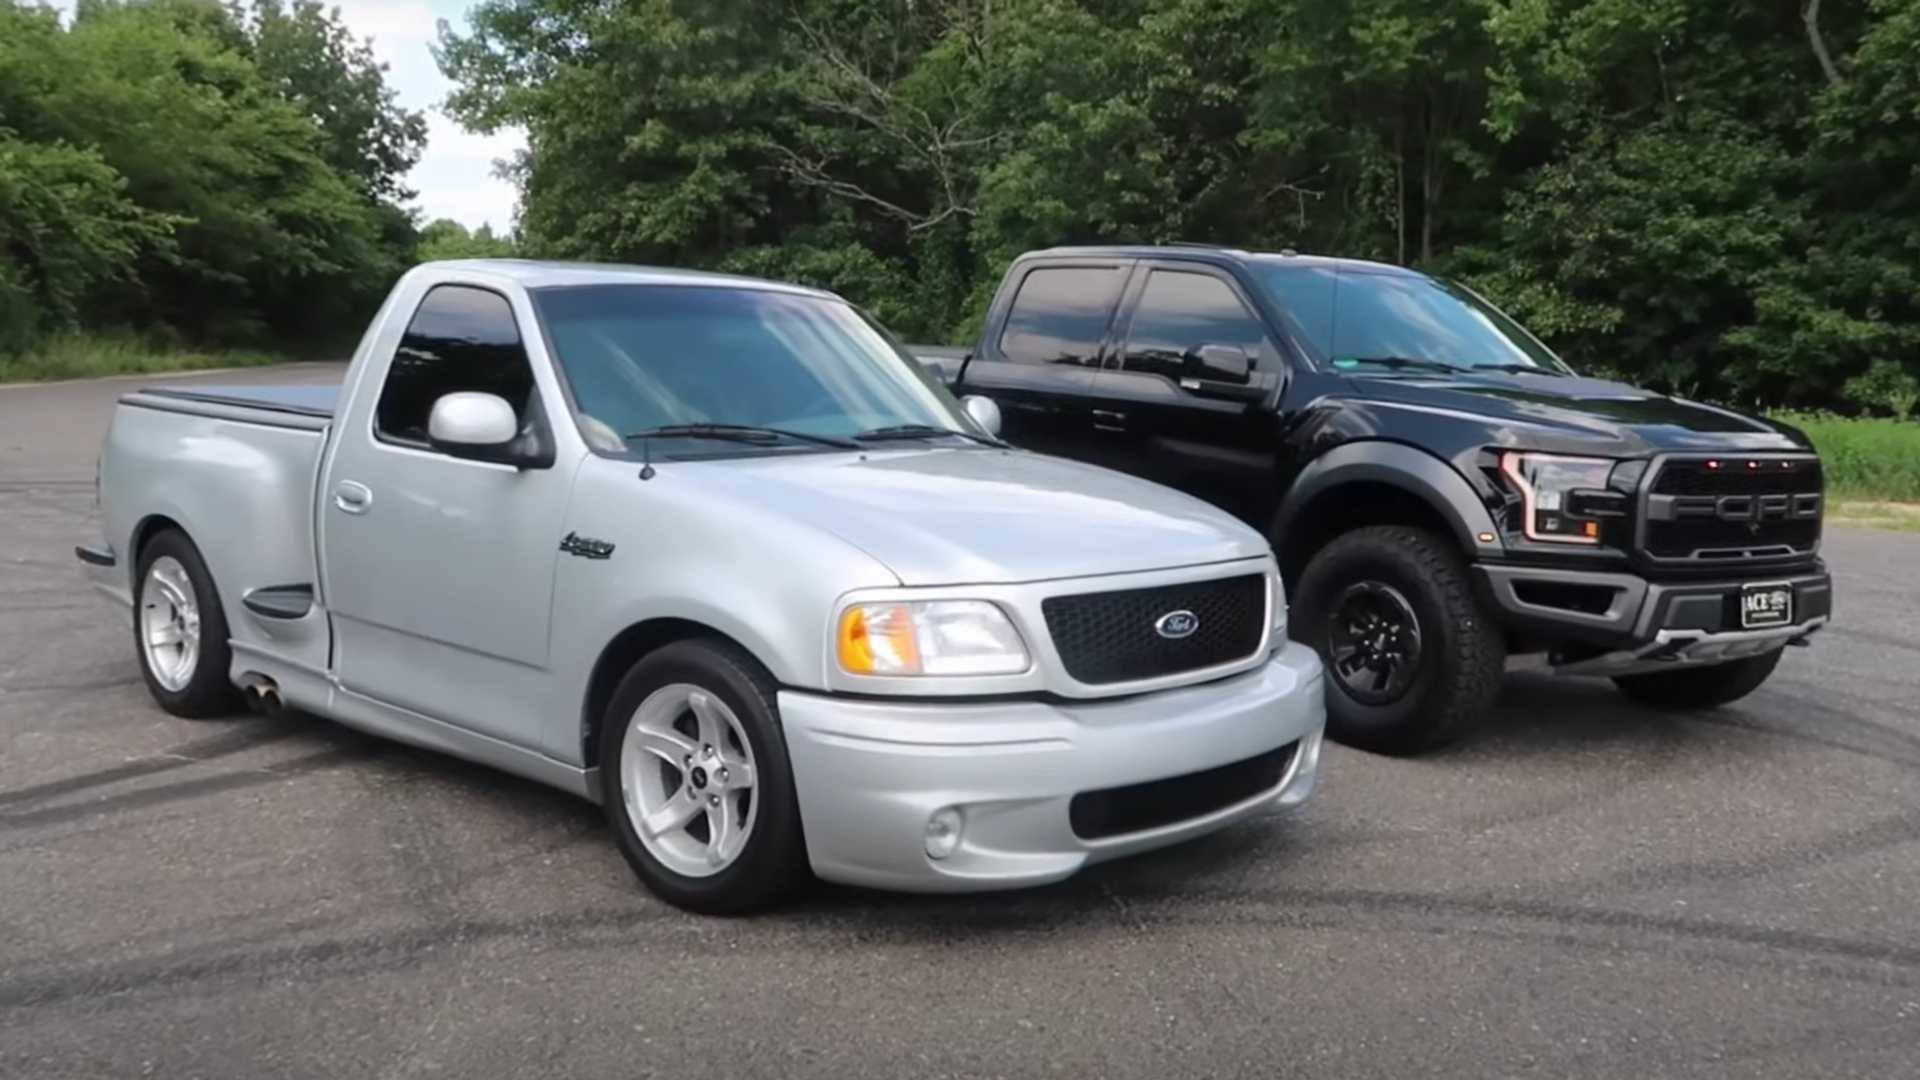 Ford F-150 Drag Race Pits Raptor Against SVT Lightning